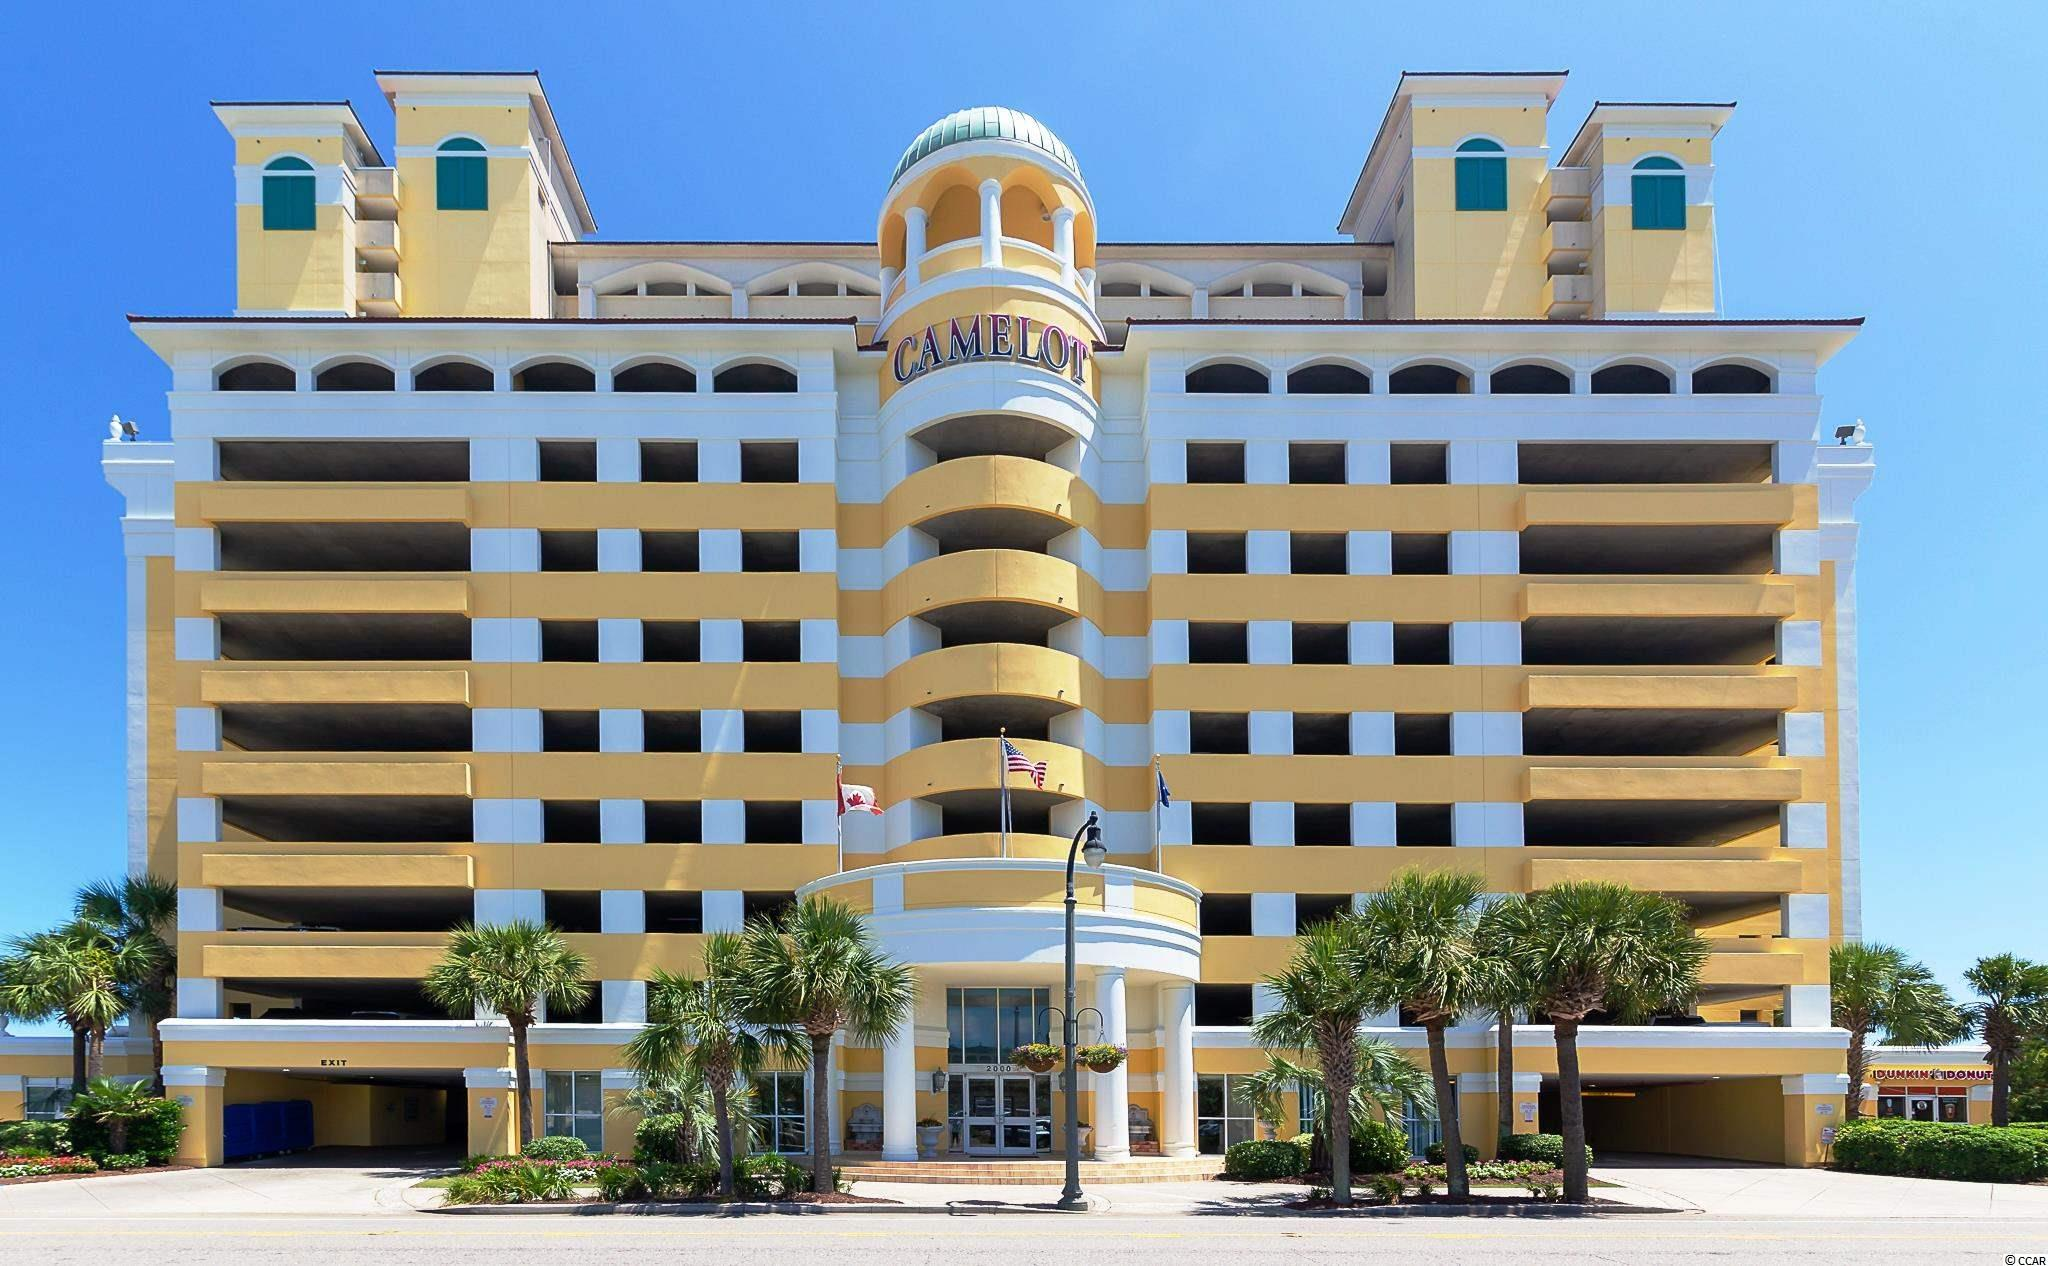 Great Investment Condo!! The numbers work real well with this oceanfront 2BD/2BA unit at Camelot by the Sea. Located at one of the most desirable intersections in the Grand Strand. This 6th floor unit has gone through some recent upgrades such as new HVAC(Feb.2020), Granite Counter Tops, Refaced Kitchen Cabinets, Dishwasher, Refrigerator, Recent Draperies and Paint Throughout. Camelot has many fantastic amenities such as indoor/outdoor pools, indoor/outdoor hot tubs, kiddie pools, 200 Ft. Lazy River and Fitness Center, on site Dunkin Donuts, extended grass area for family fun and relaxation.